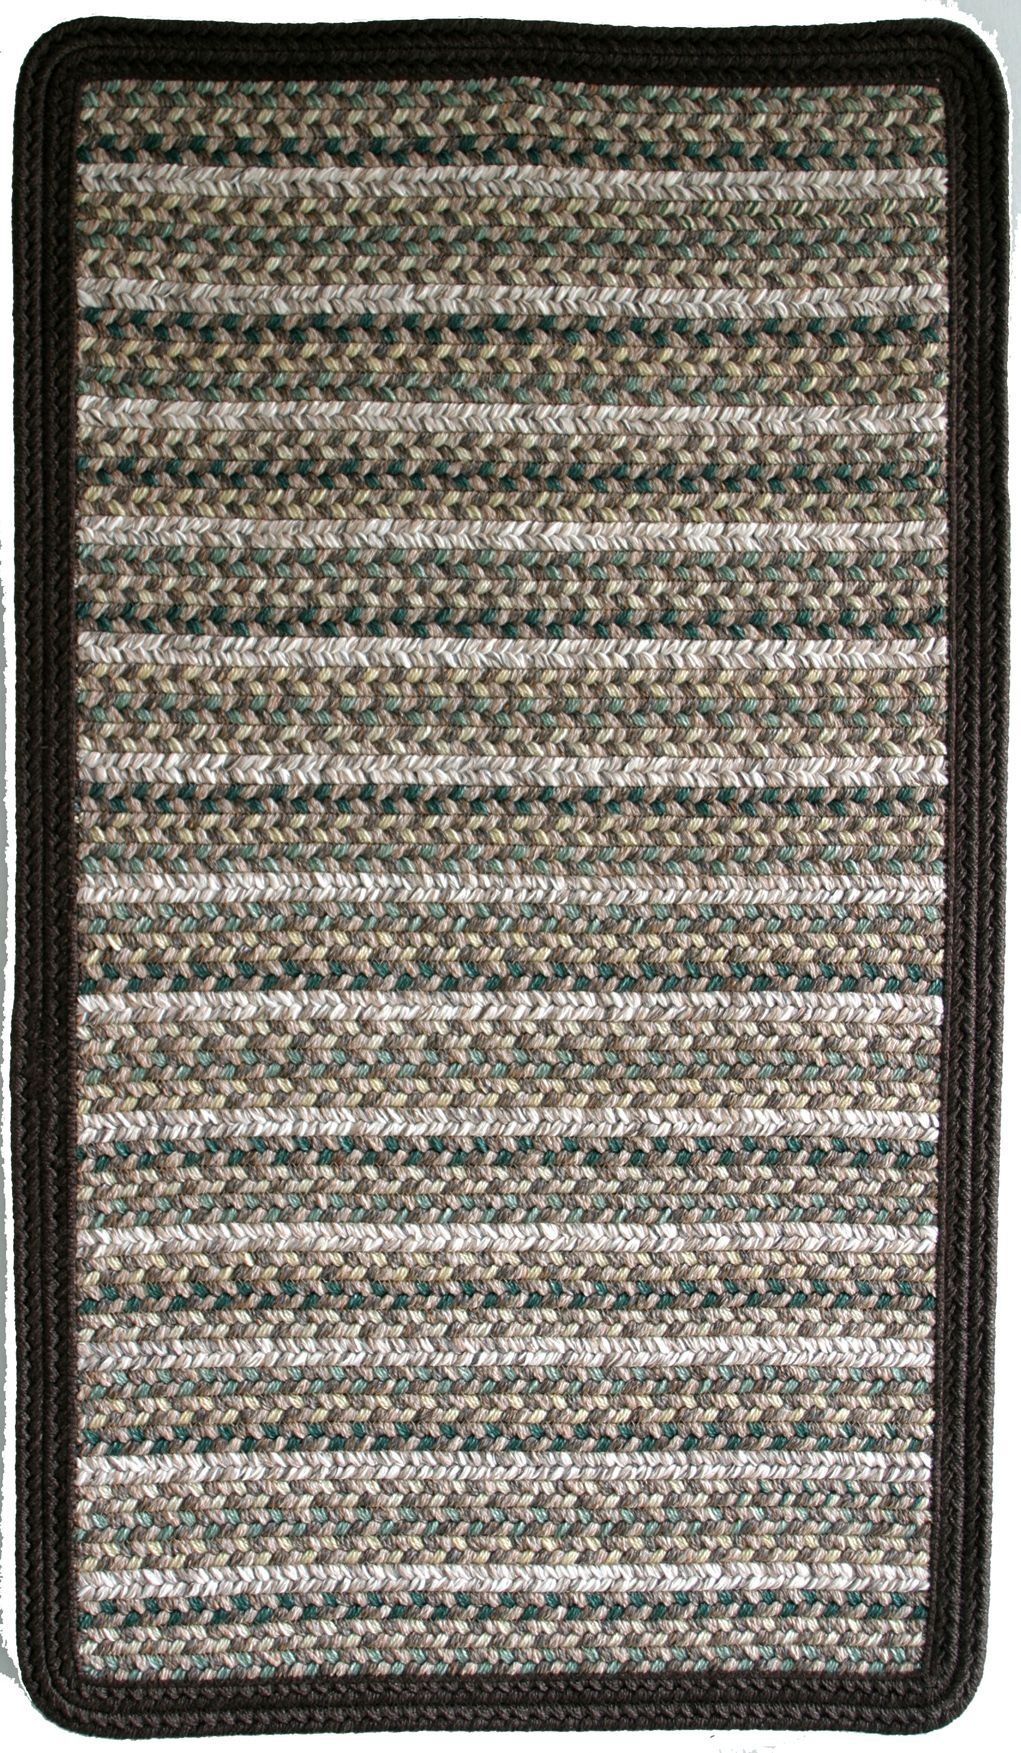 Beantown Baked Beans Brown/Tan Area Rug Rug Size: Square 6'